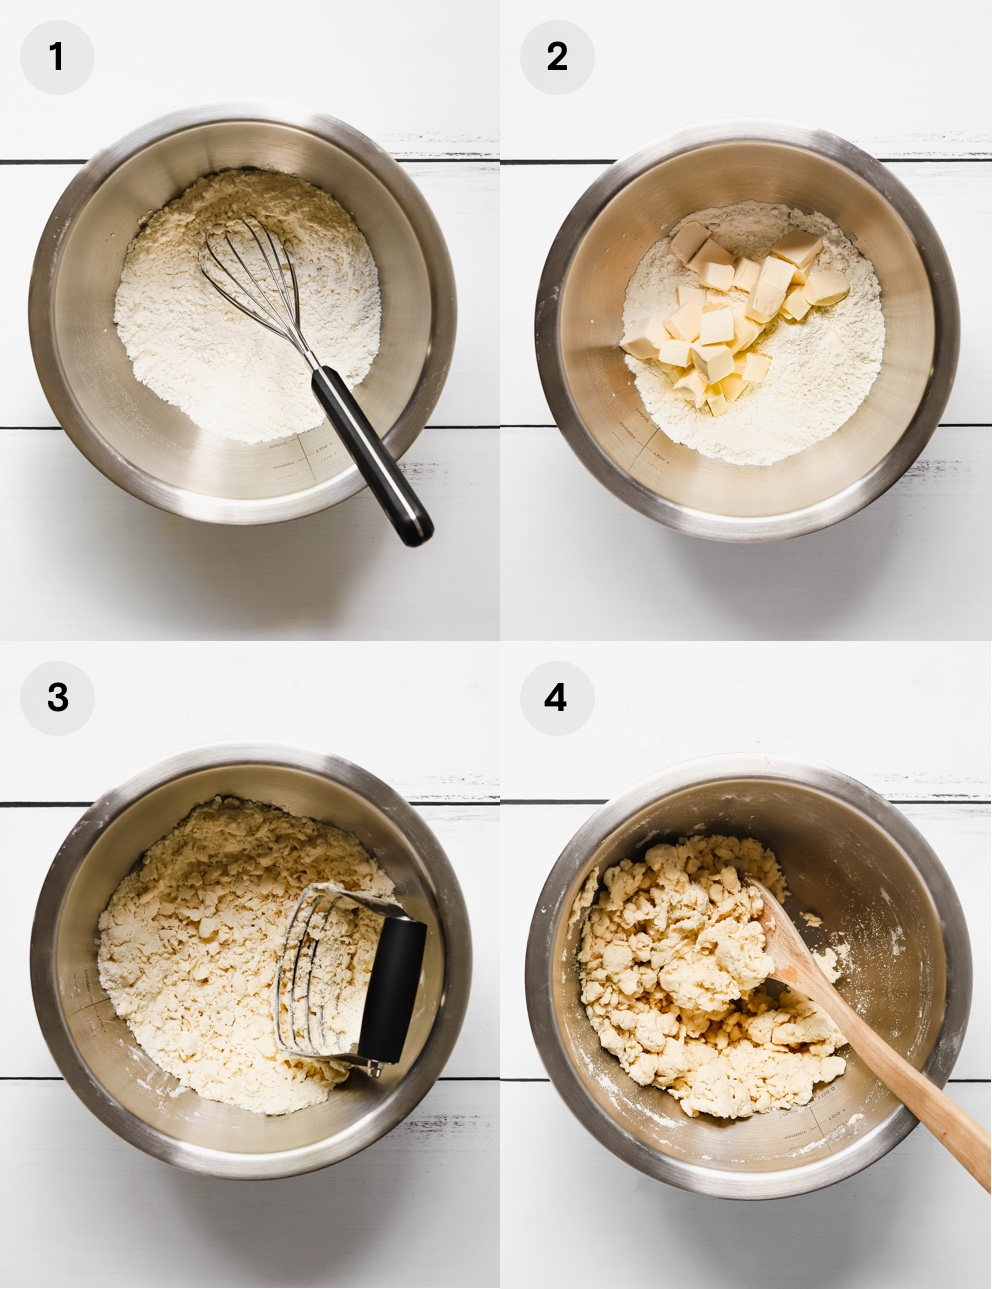 How to make vegan galette dough: whisk the flour and salt, cube the vegan butter, cut the butter into the flour, and stir in the ice water.